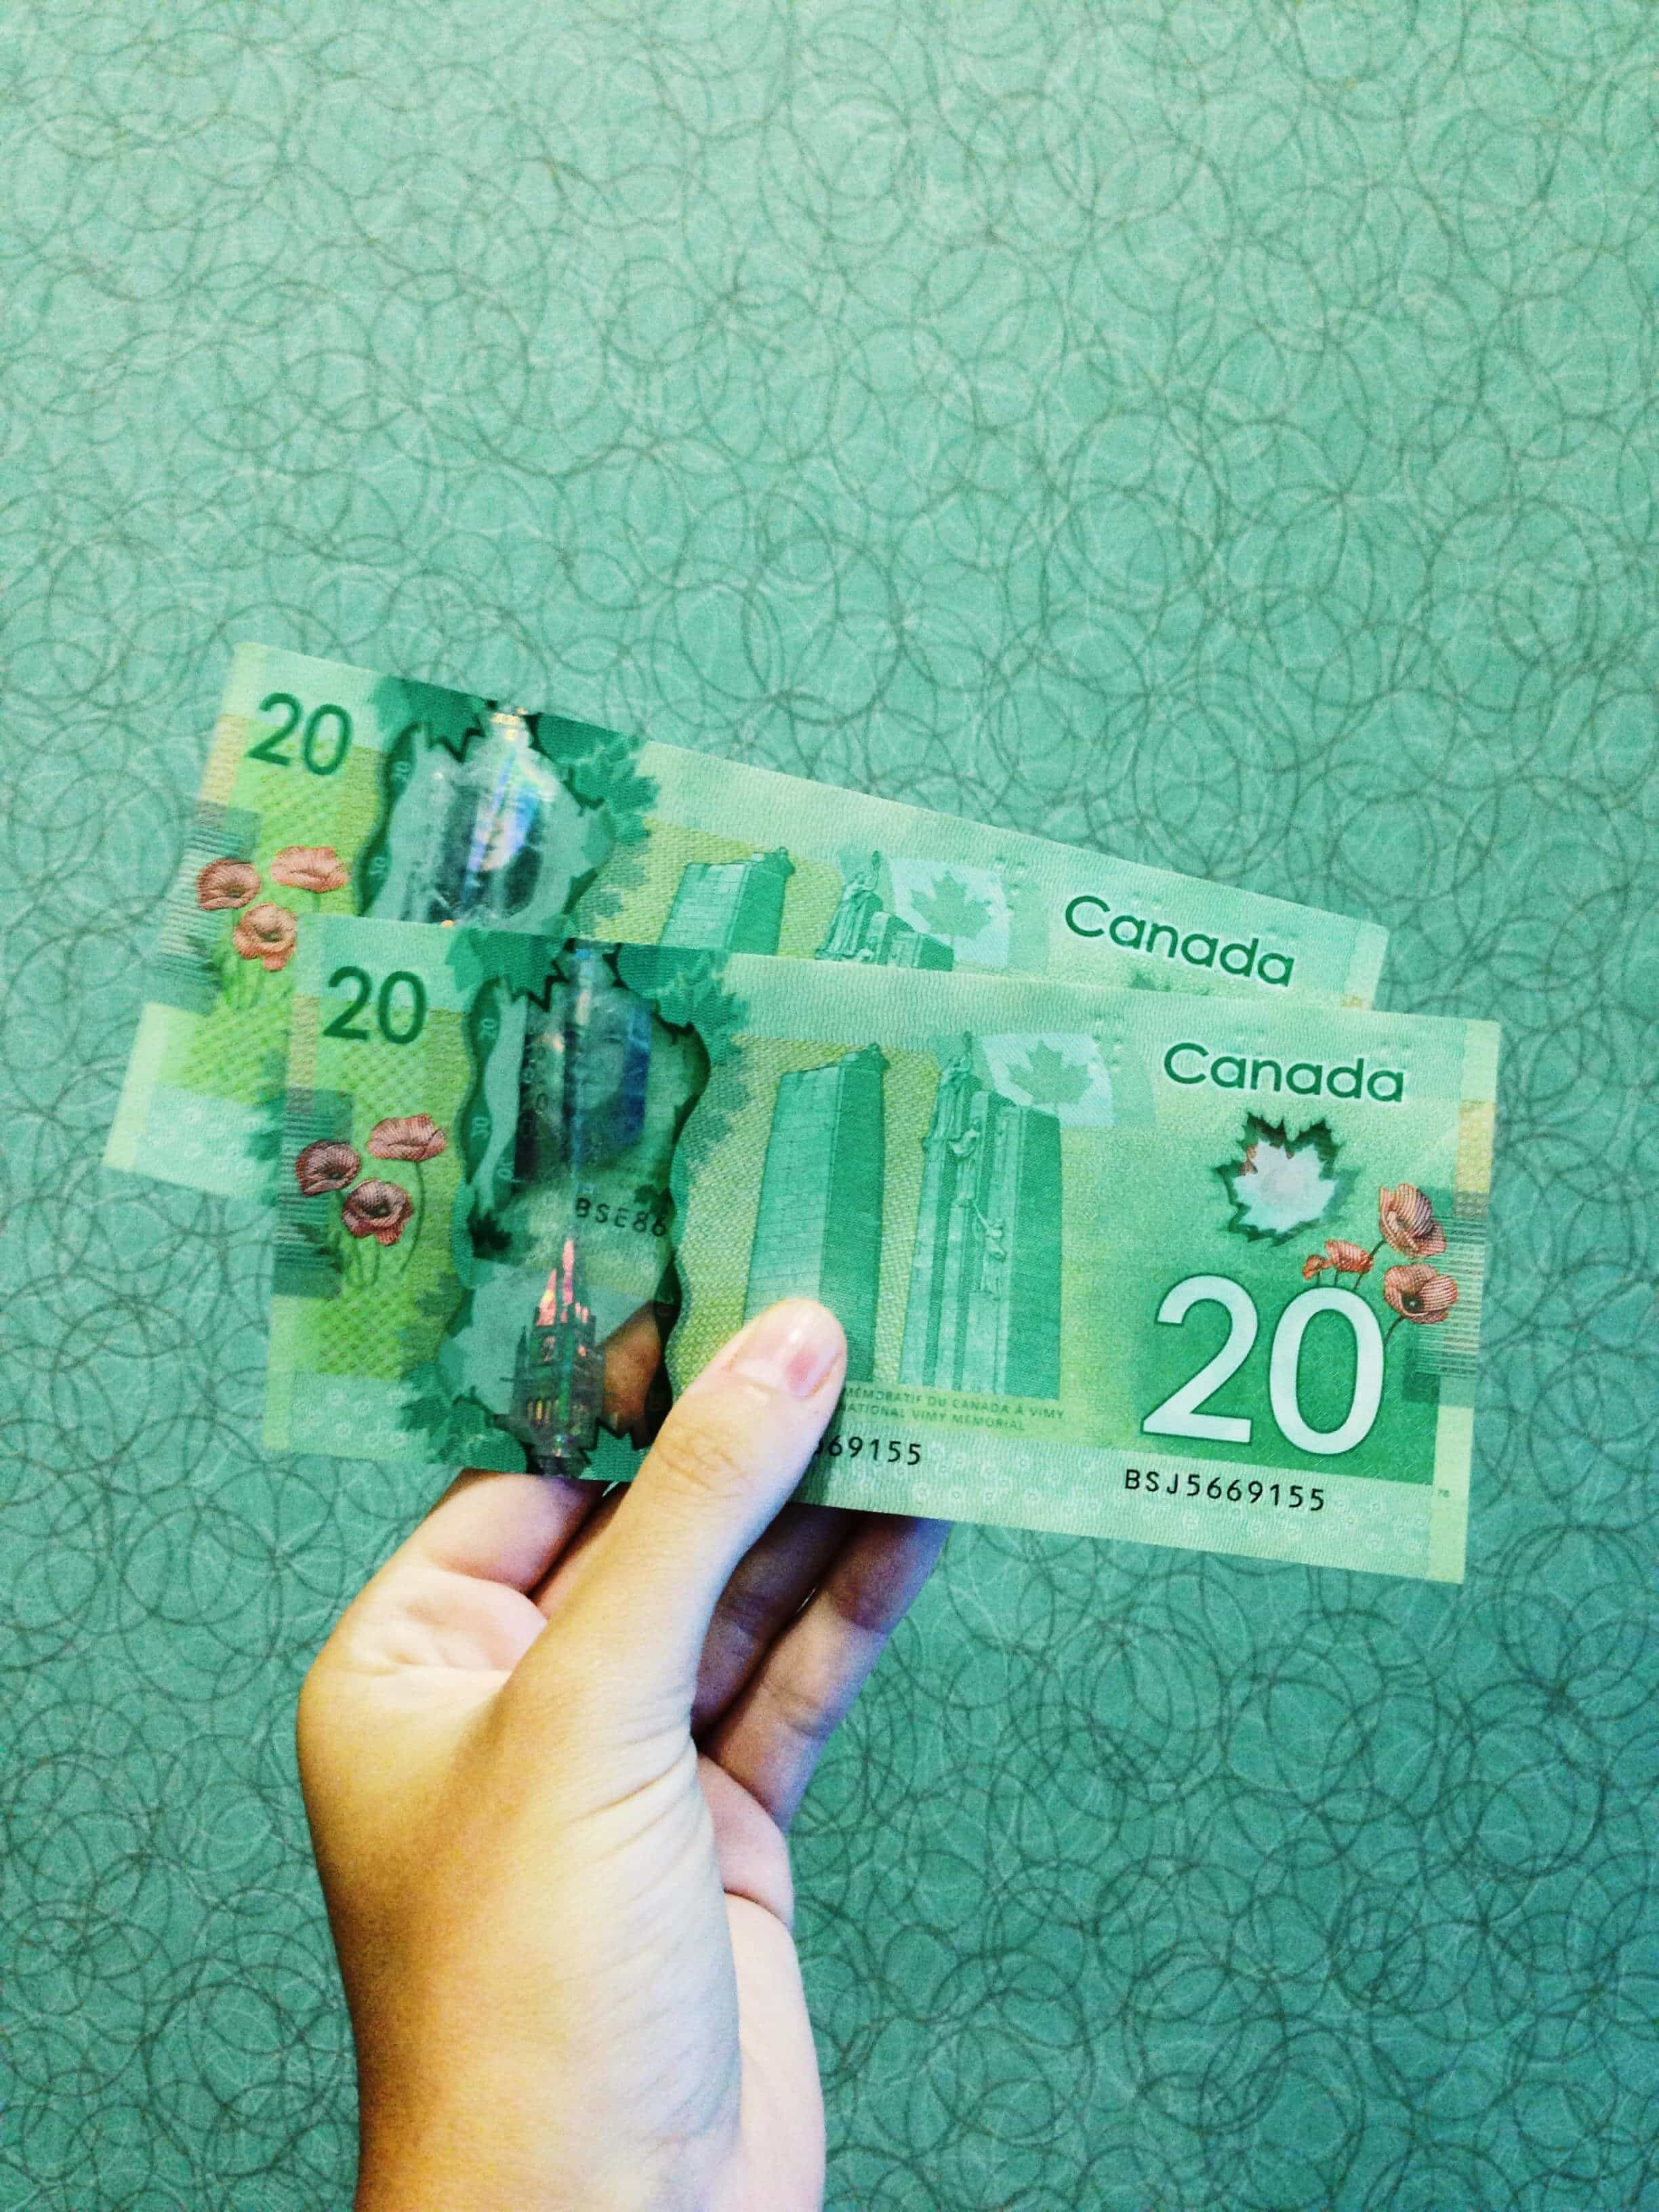 Working holiday visa in Canada - In 2019 the Canadian government requires proof of CAD$2500 to support yourself and an onward/return flight. If you don't have any outbound flights booked, enough funds would also be ok. We quickly found out that money in Canada, especially in Vancouver, won't get you far.